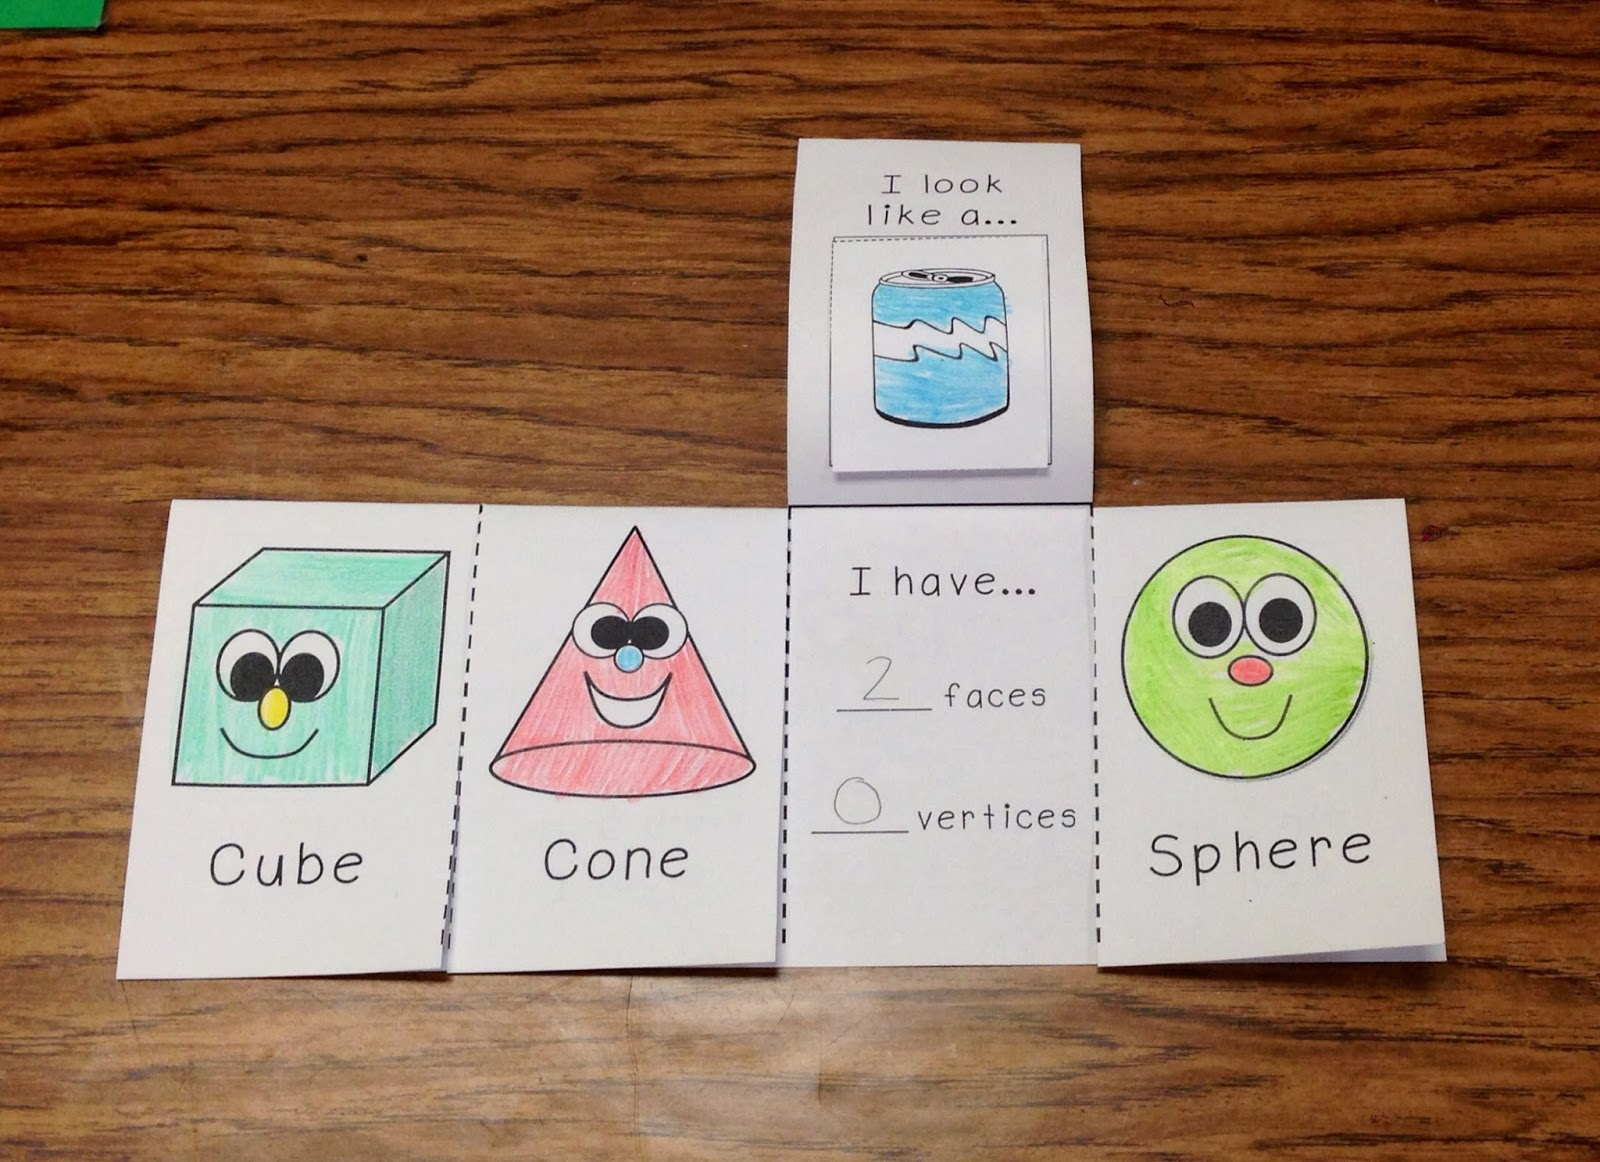 We wrote about 3D shapes in a mini book.